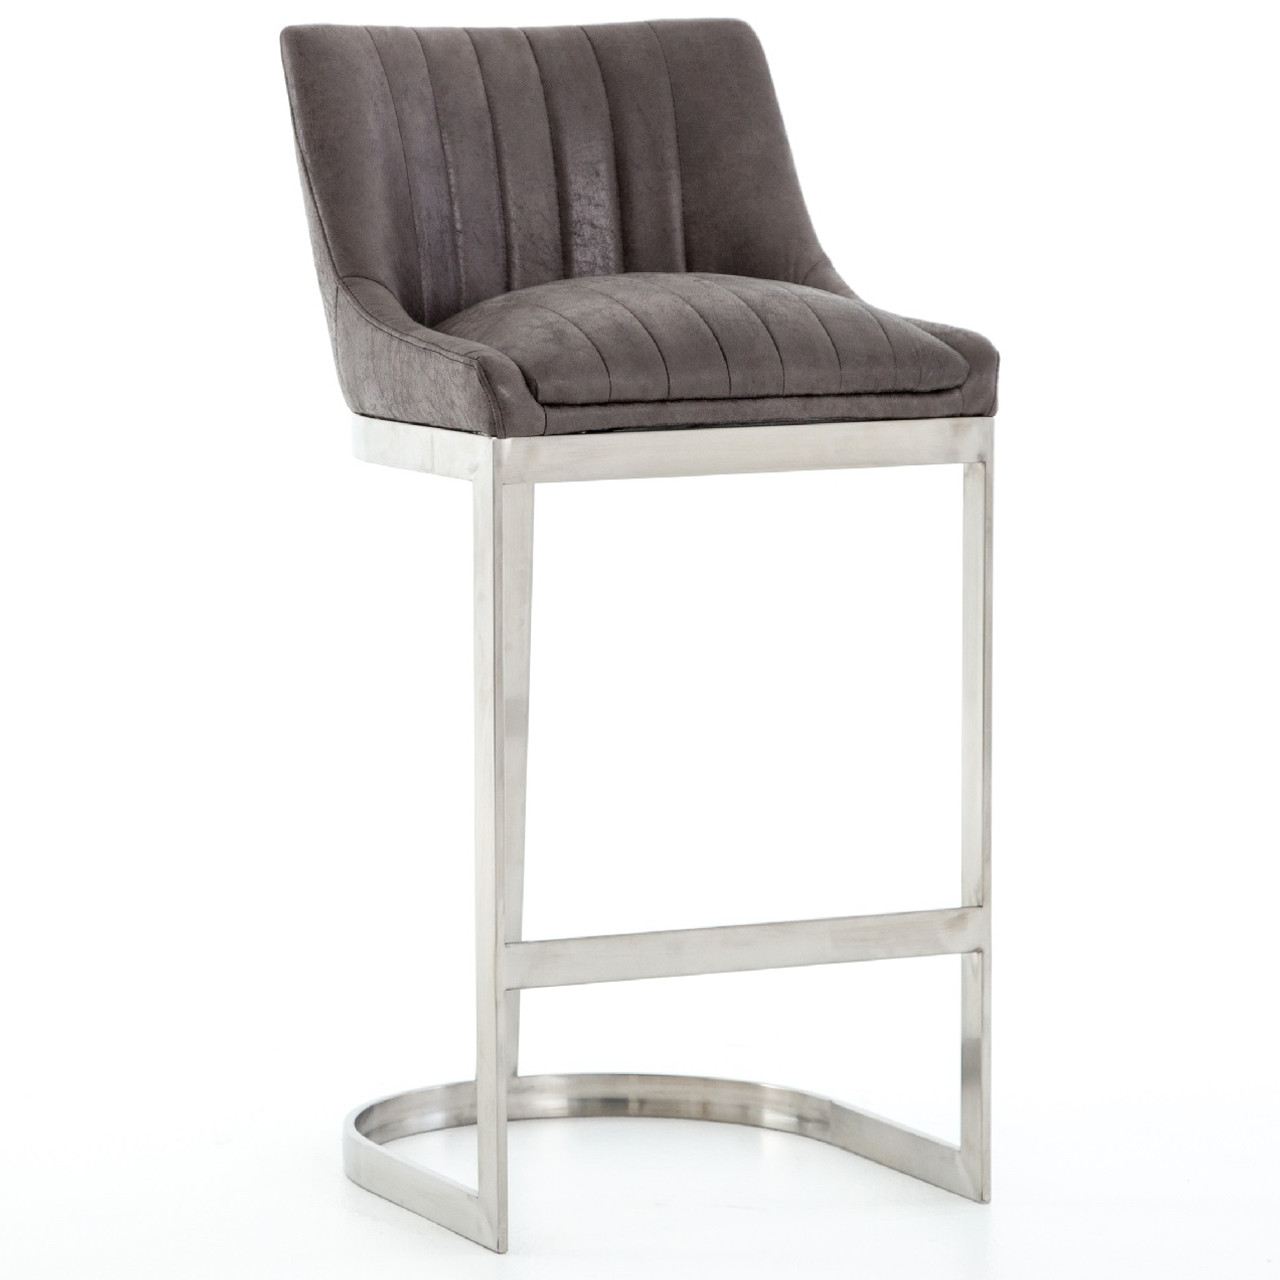 stainless steel bar stools Rory Graphite Leather + Stainless Steel Bar Stool | Zin Home stainless steel bar stools